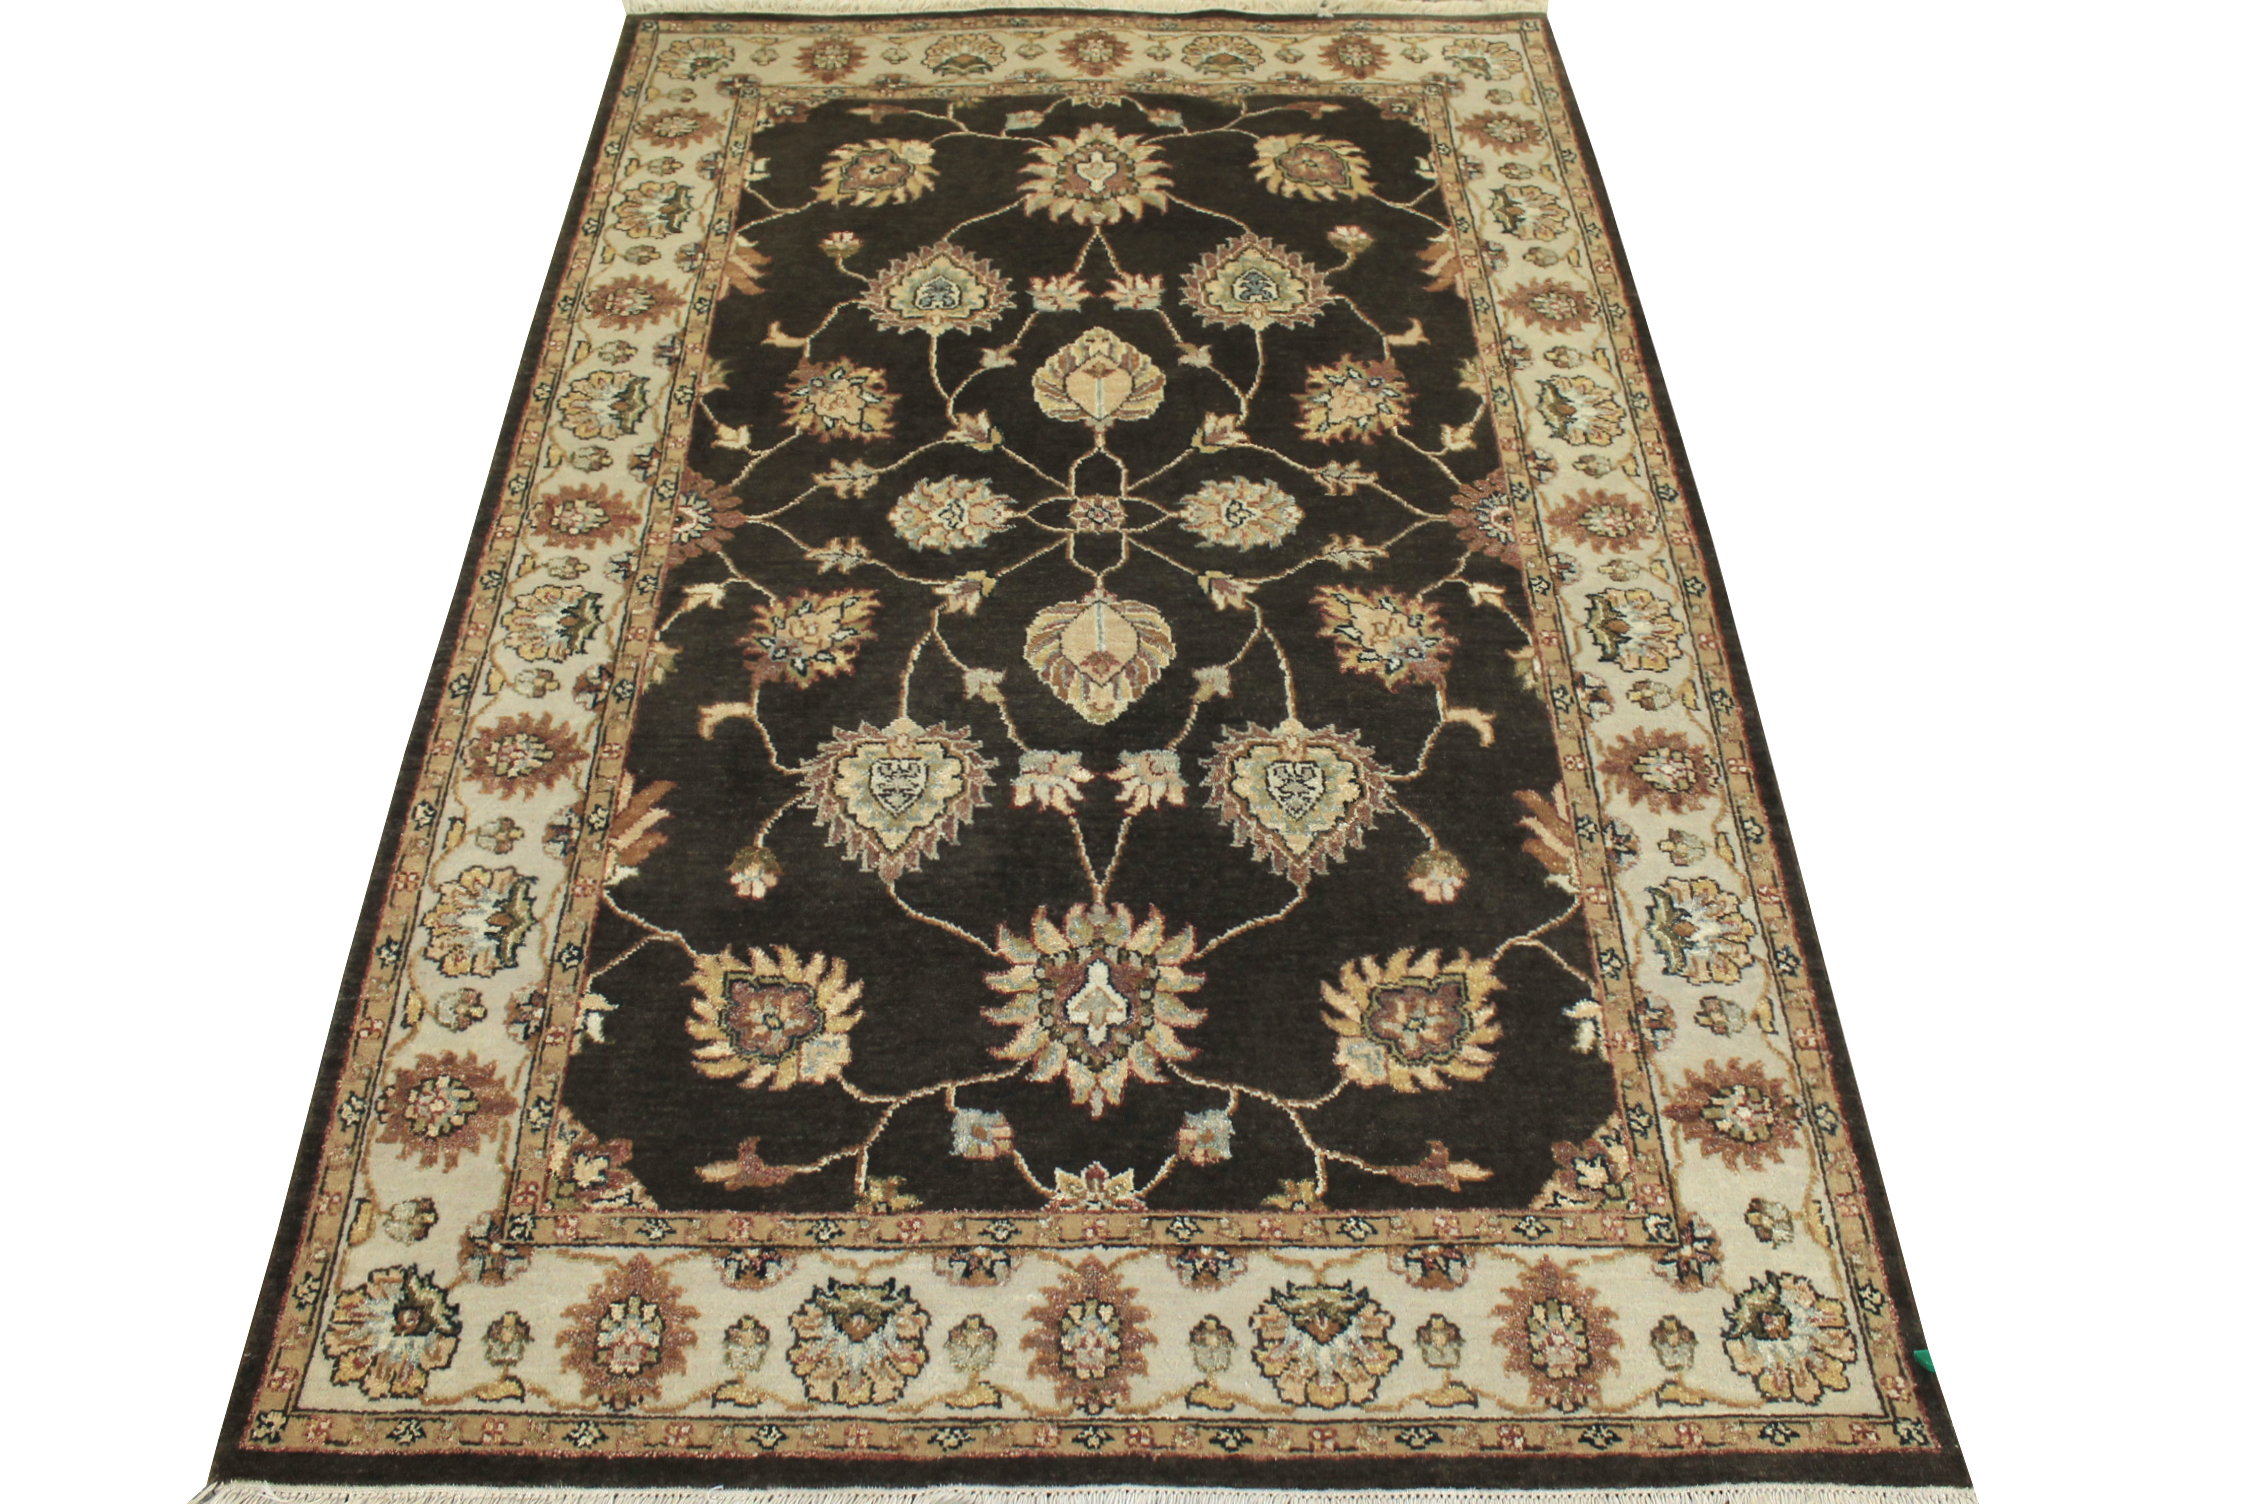 4x6 Peshawar Hand Knotted Wool Area Rug - MR10293